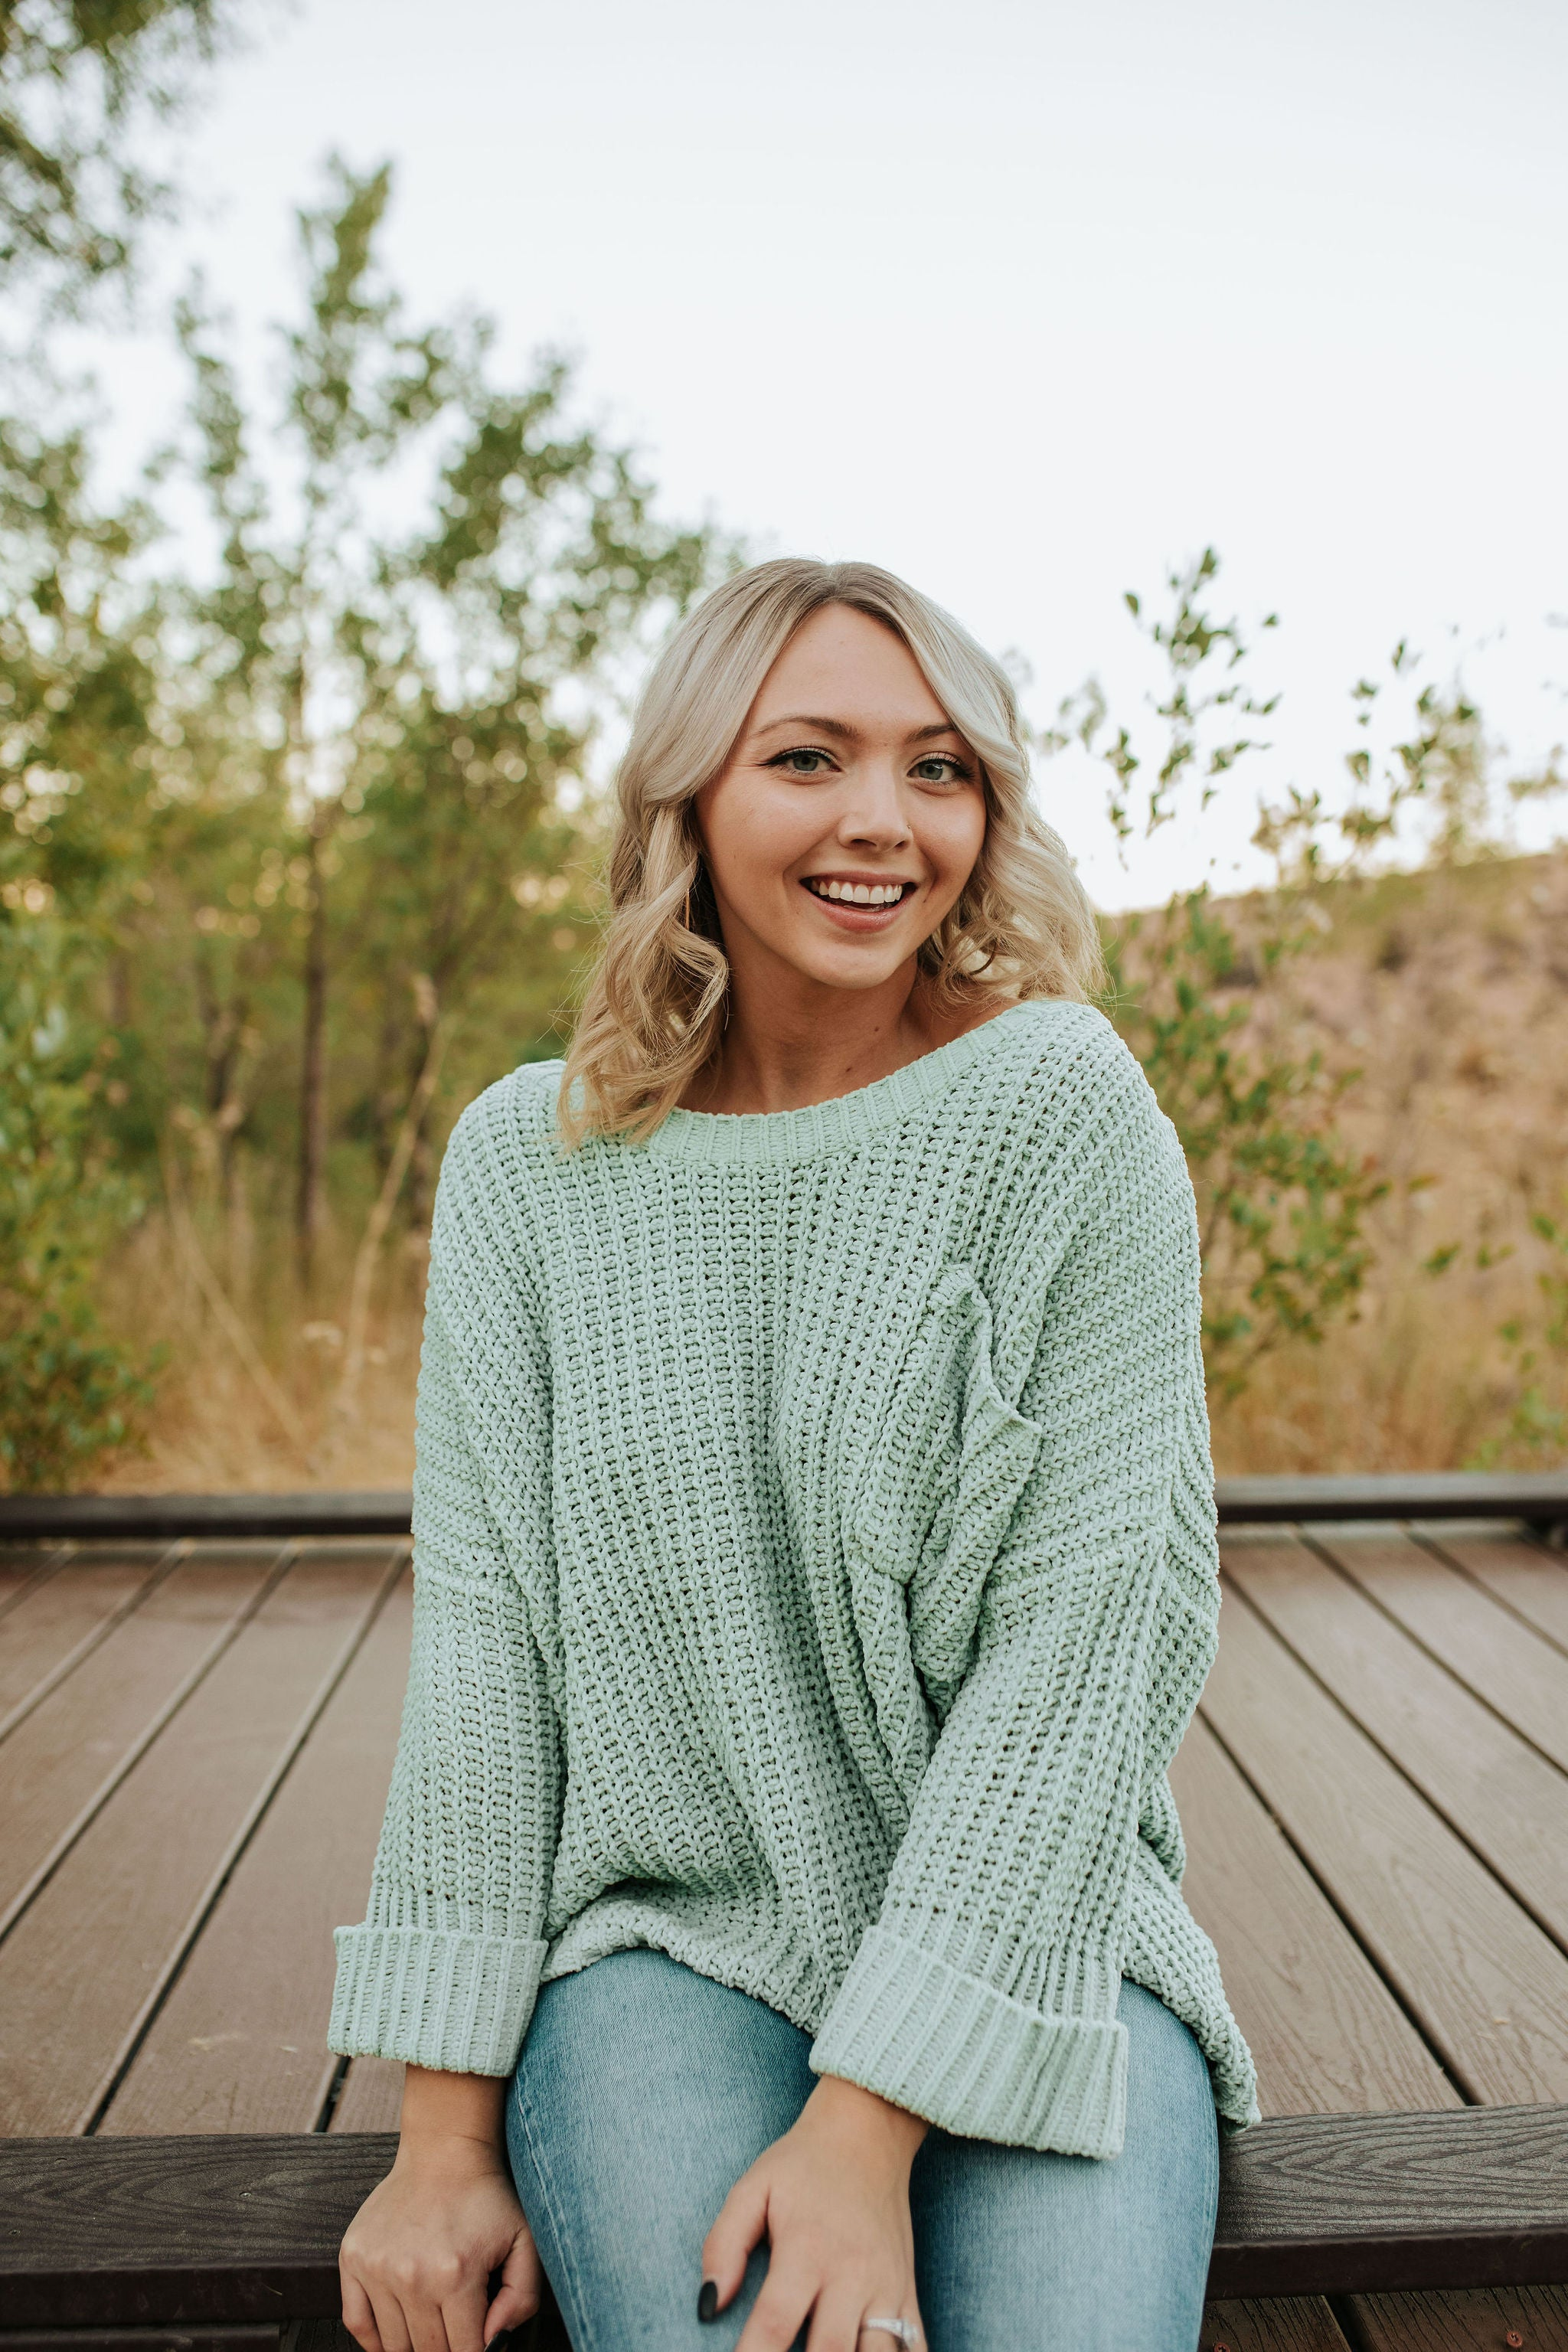 THE WHITNIE RELAXED FIT SWEATER IN WINTERGREEN